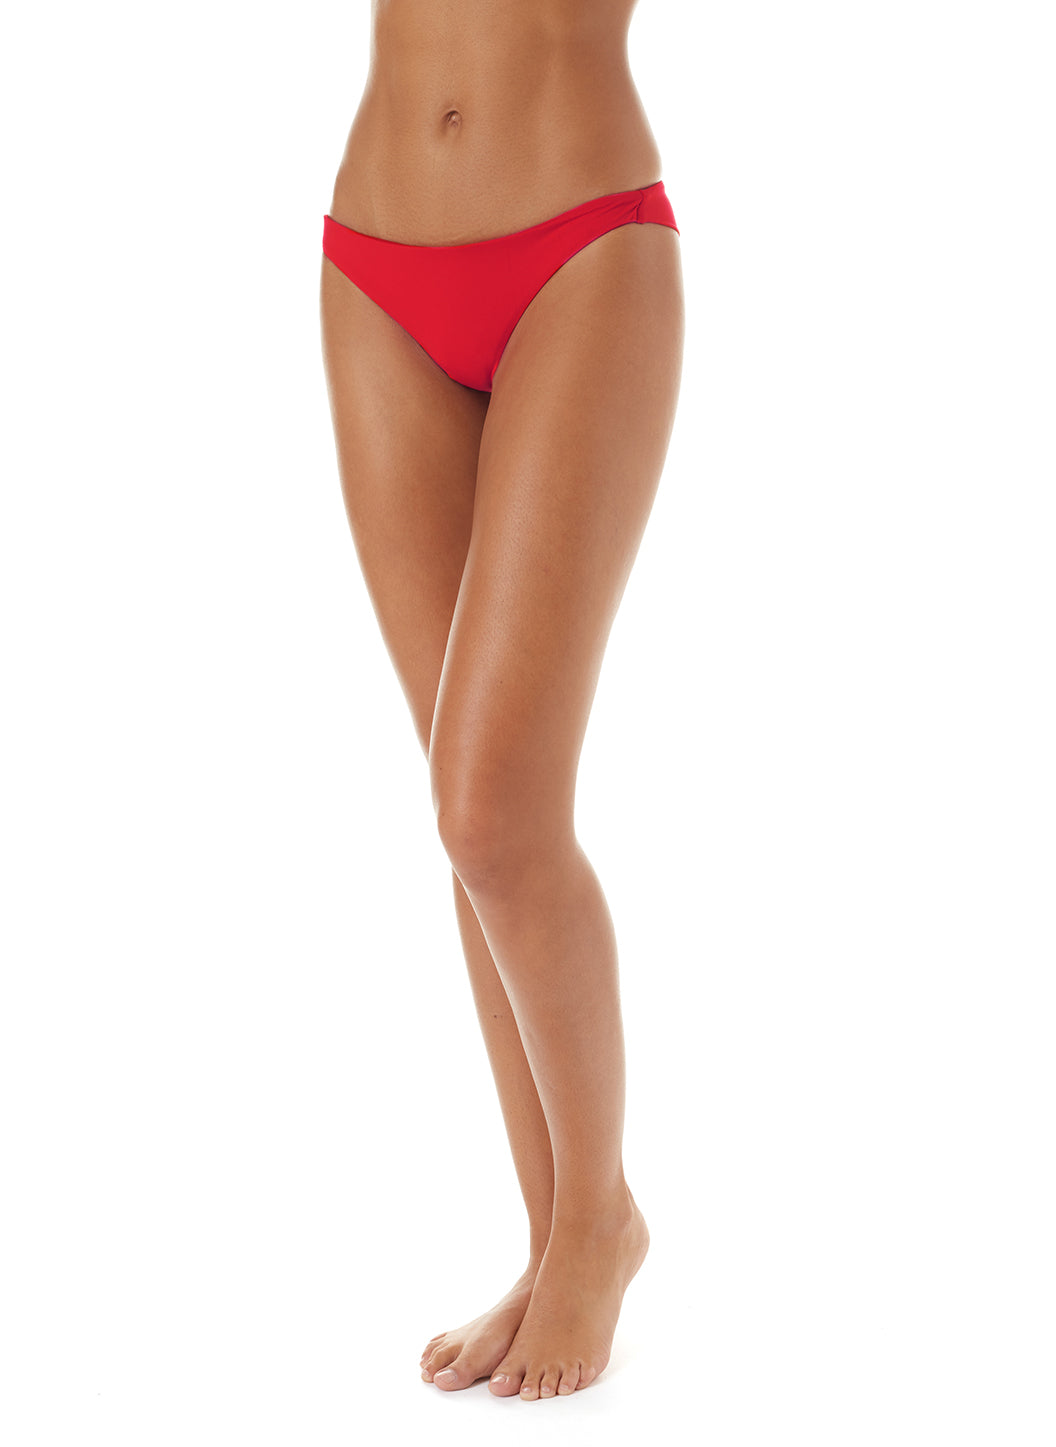 Exclusive Sisi Red Small Bikini Bottoms - Melissa Odabash Bikini Bottoms